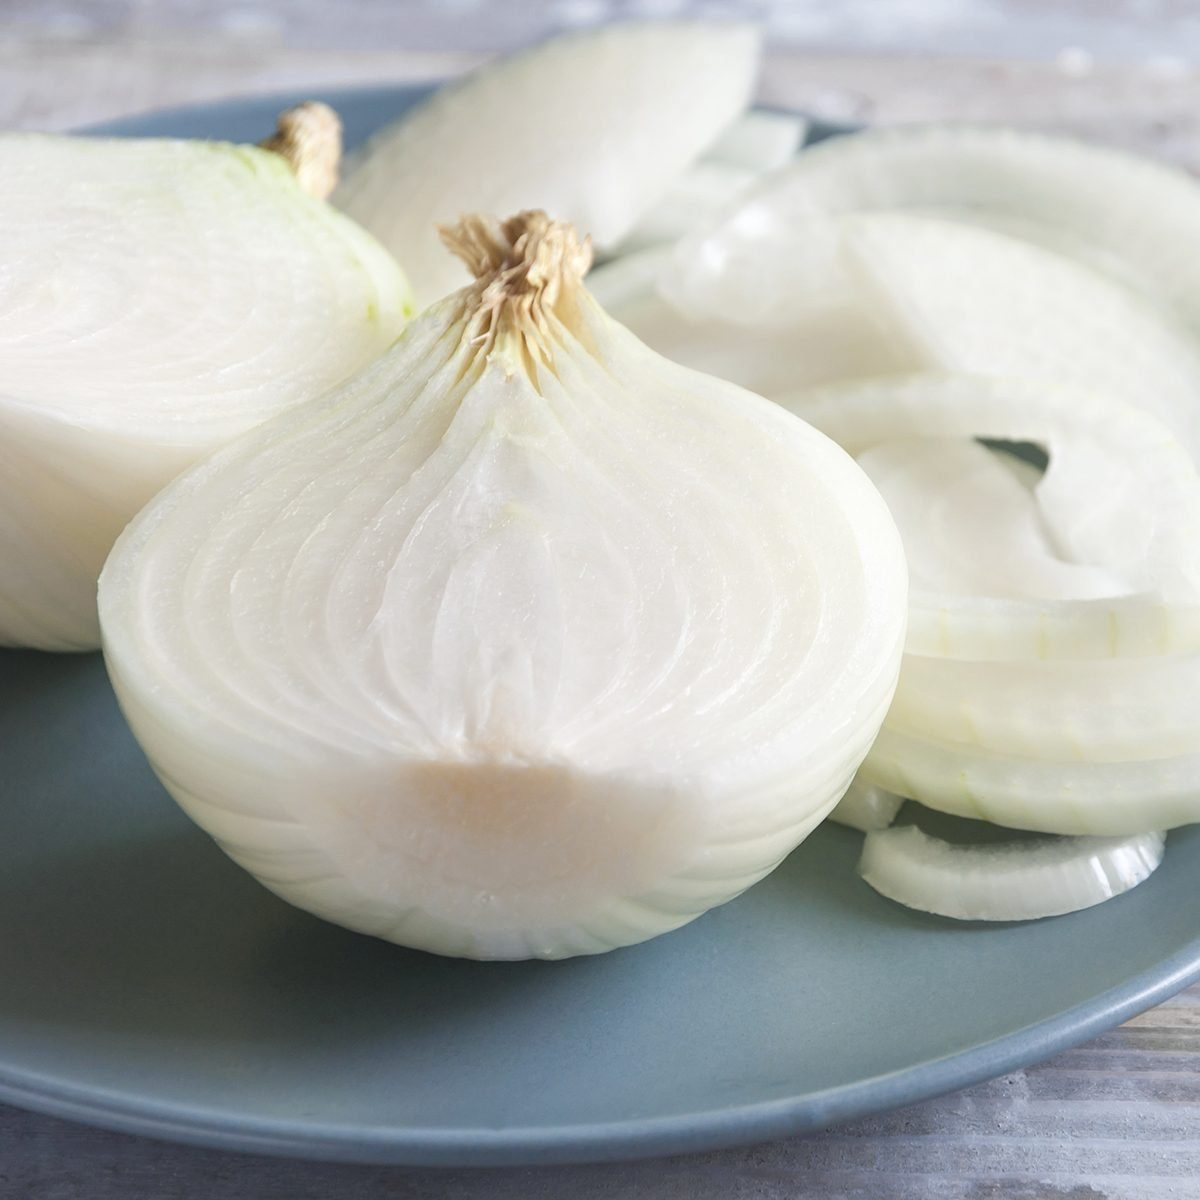 White onion on a wooden rustic table. Organic vegetables. Close-up of sliced raw organic white onion on a plate.; Shutterstock ID 681266095; Job (TFH, TOH, RD, BNB, CWM, CM): TOH